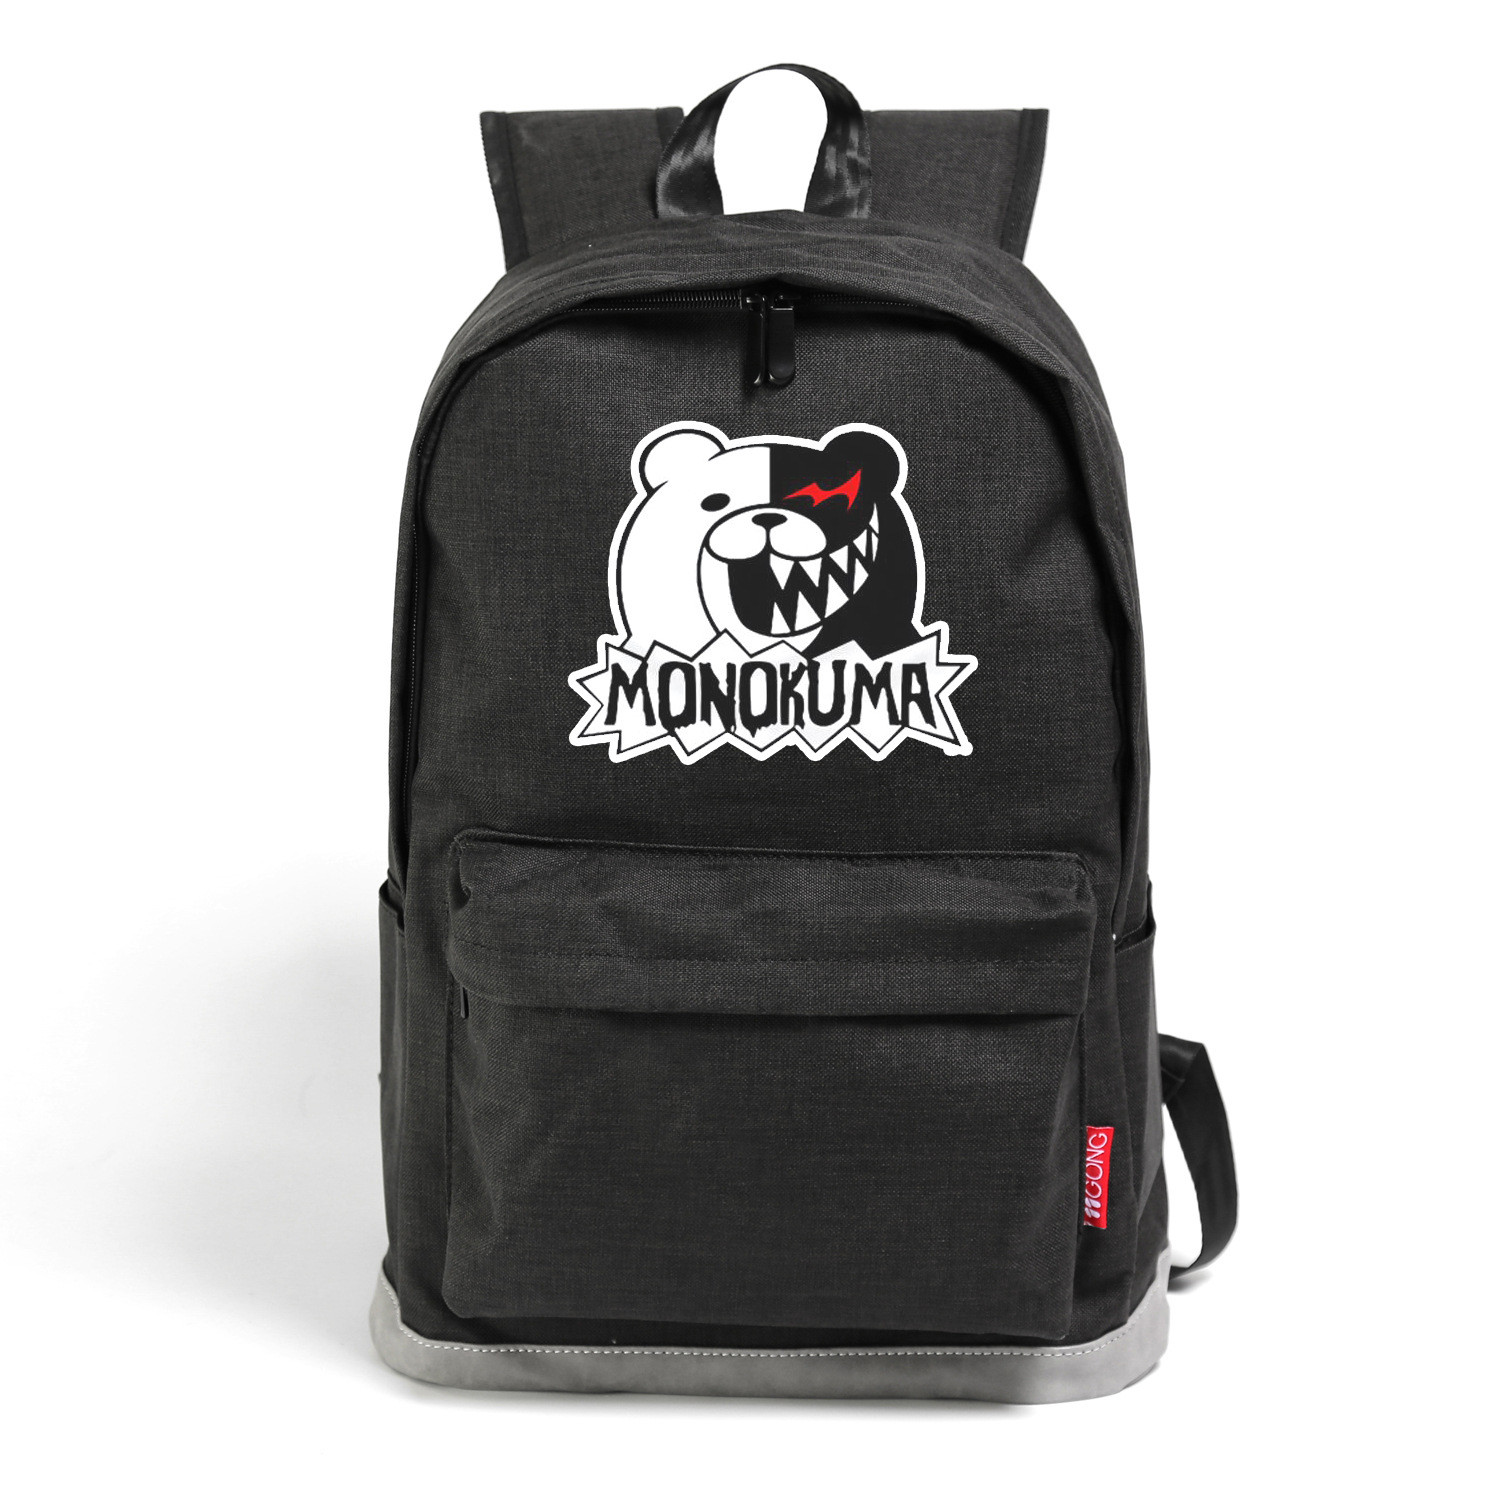 Anime Danganronpa Monokuma Cosplay Cloth Shoulder Bag Backpack Bags For School Purse Gifts